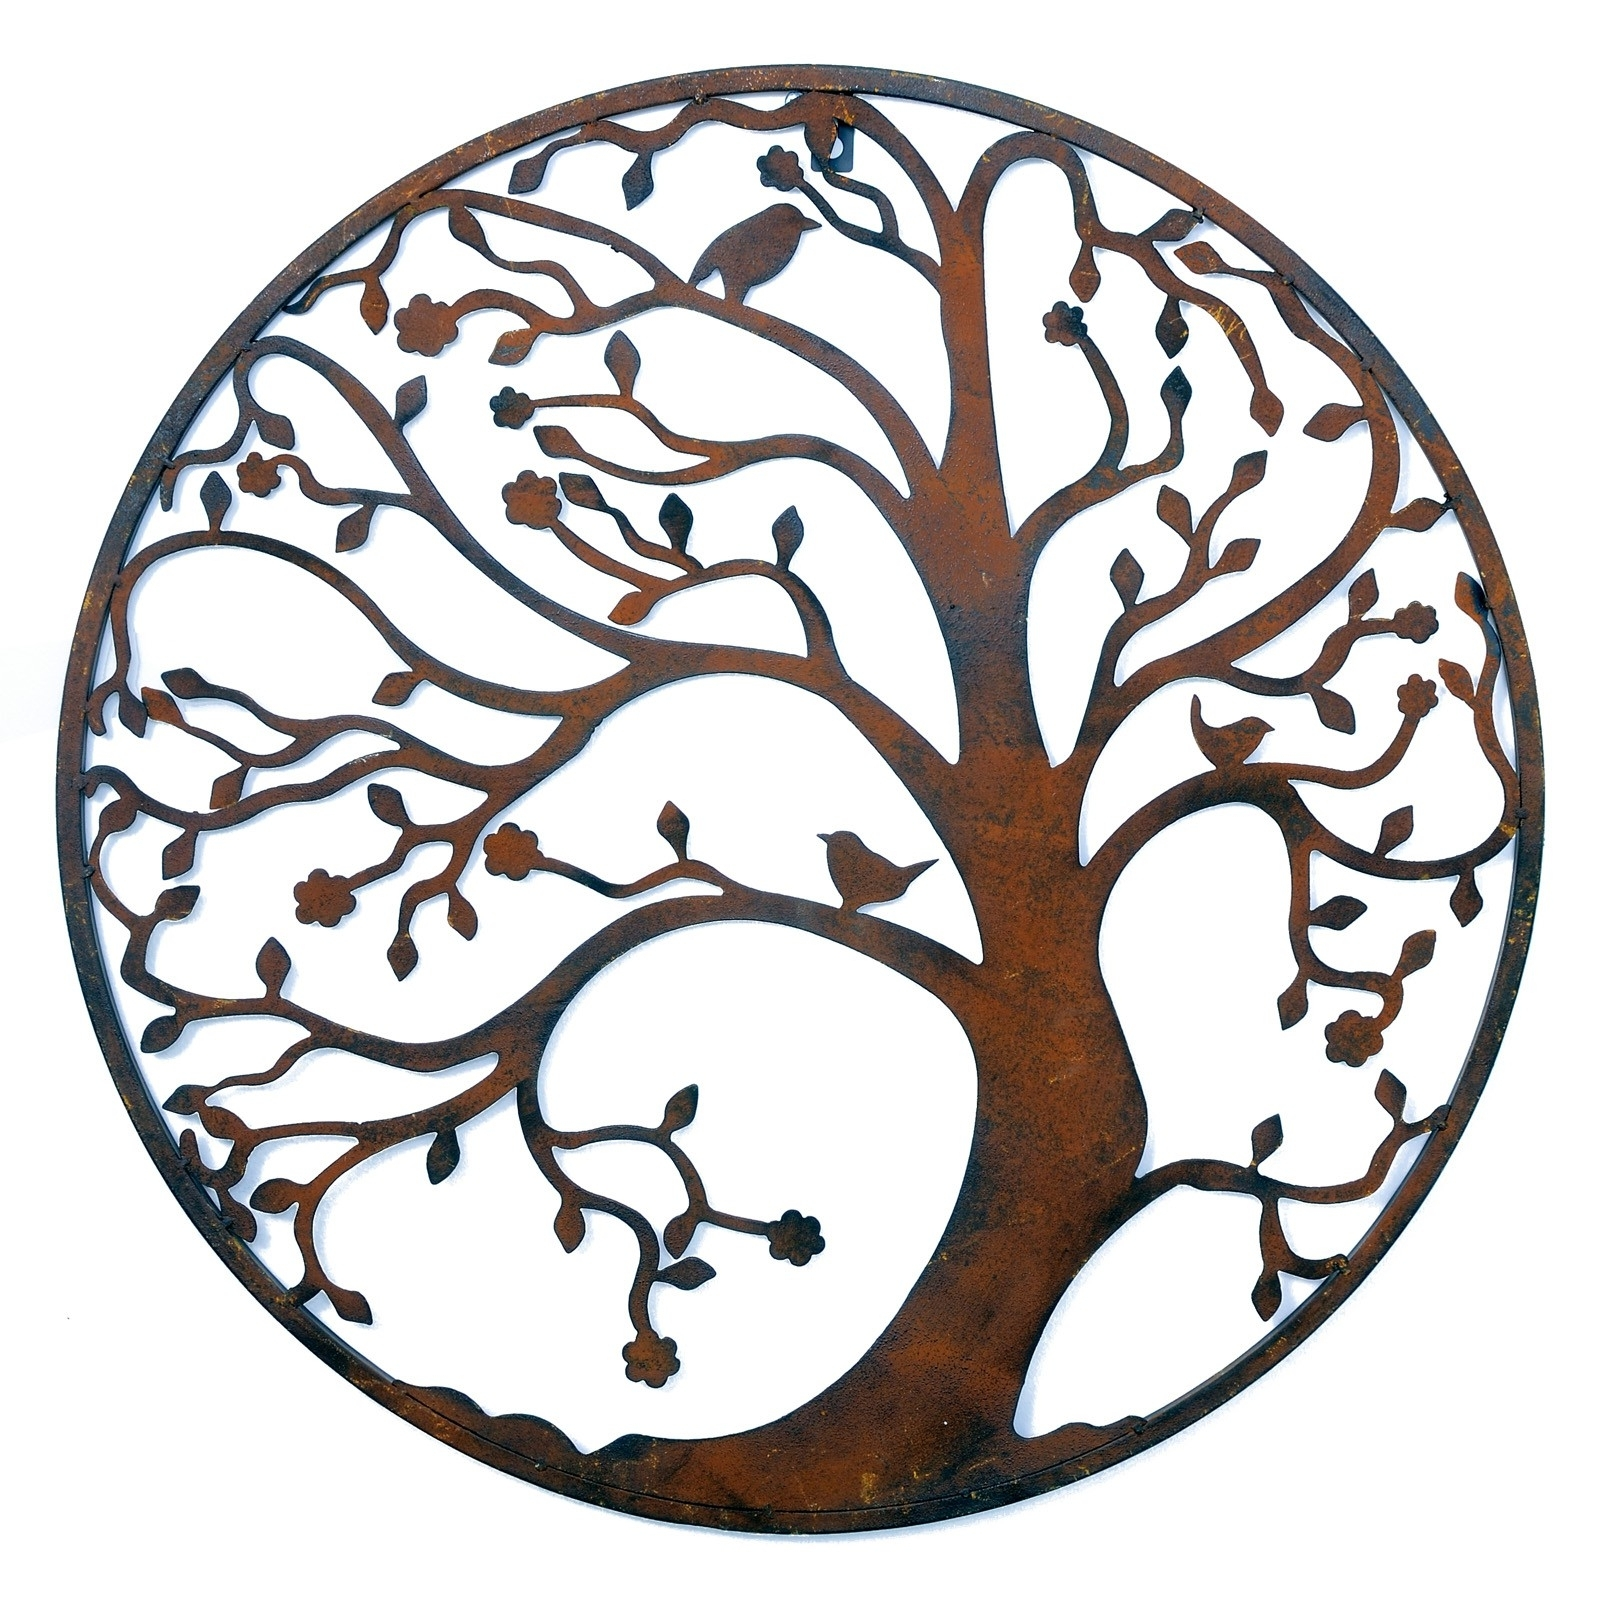 Wall Art Designs: Rusted Classic Design Tree Leaf Branch Birds Throughout Preferred Outside Metal Wall Art (View 15 of 15)